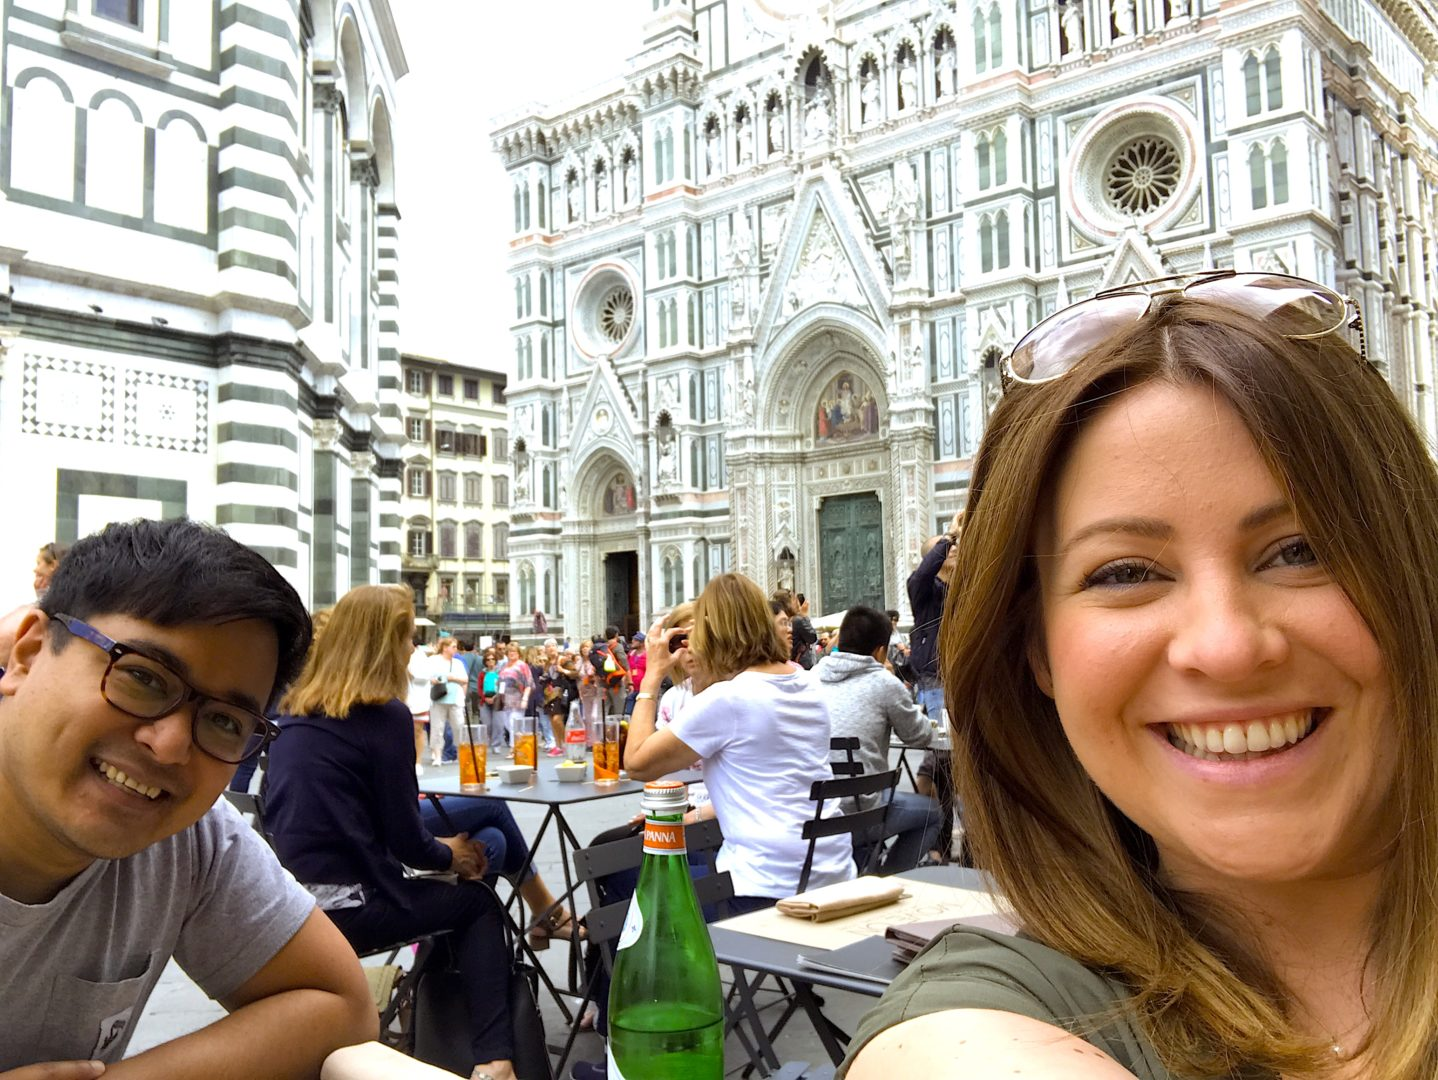 Florence Italy travel blogger The harrogate girl